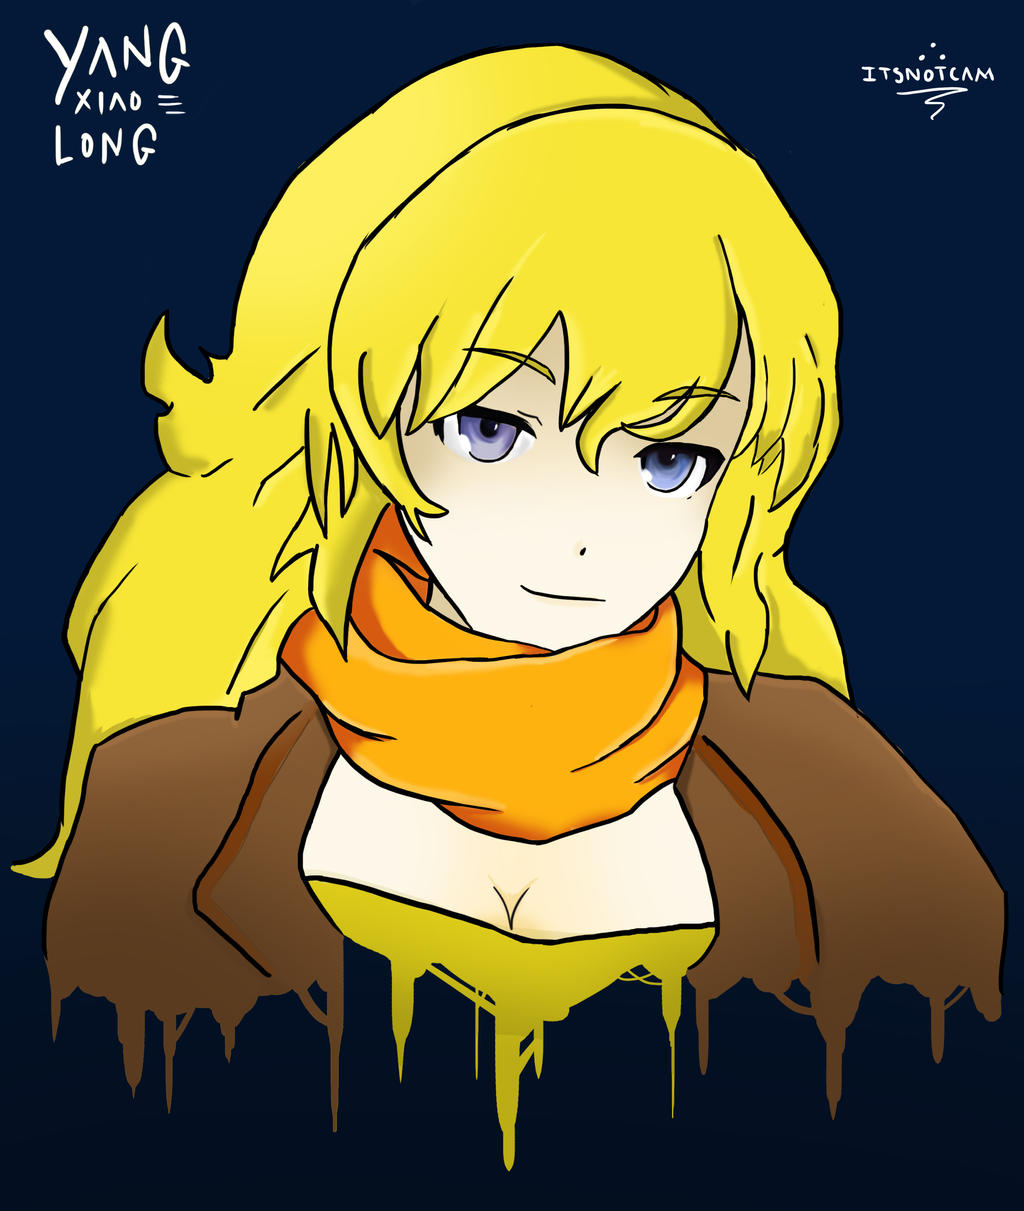 Yang Xiao Long Wallpaper: Yang Xiao Long By ItsNotCam On DeviantArt